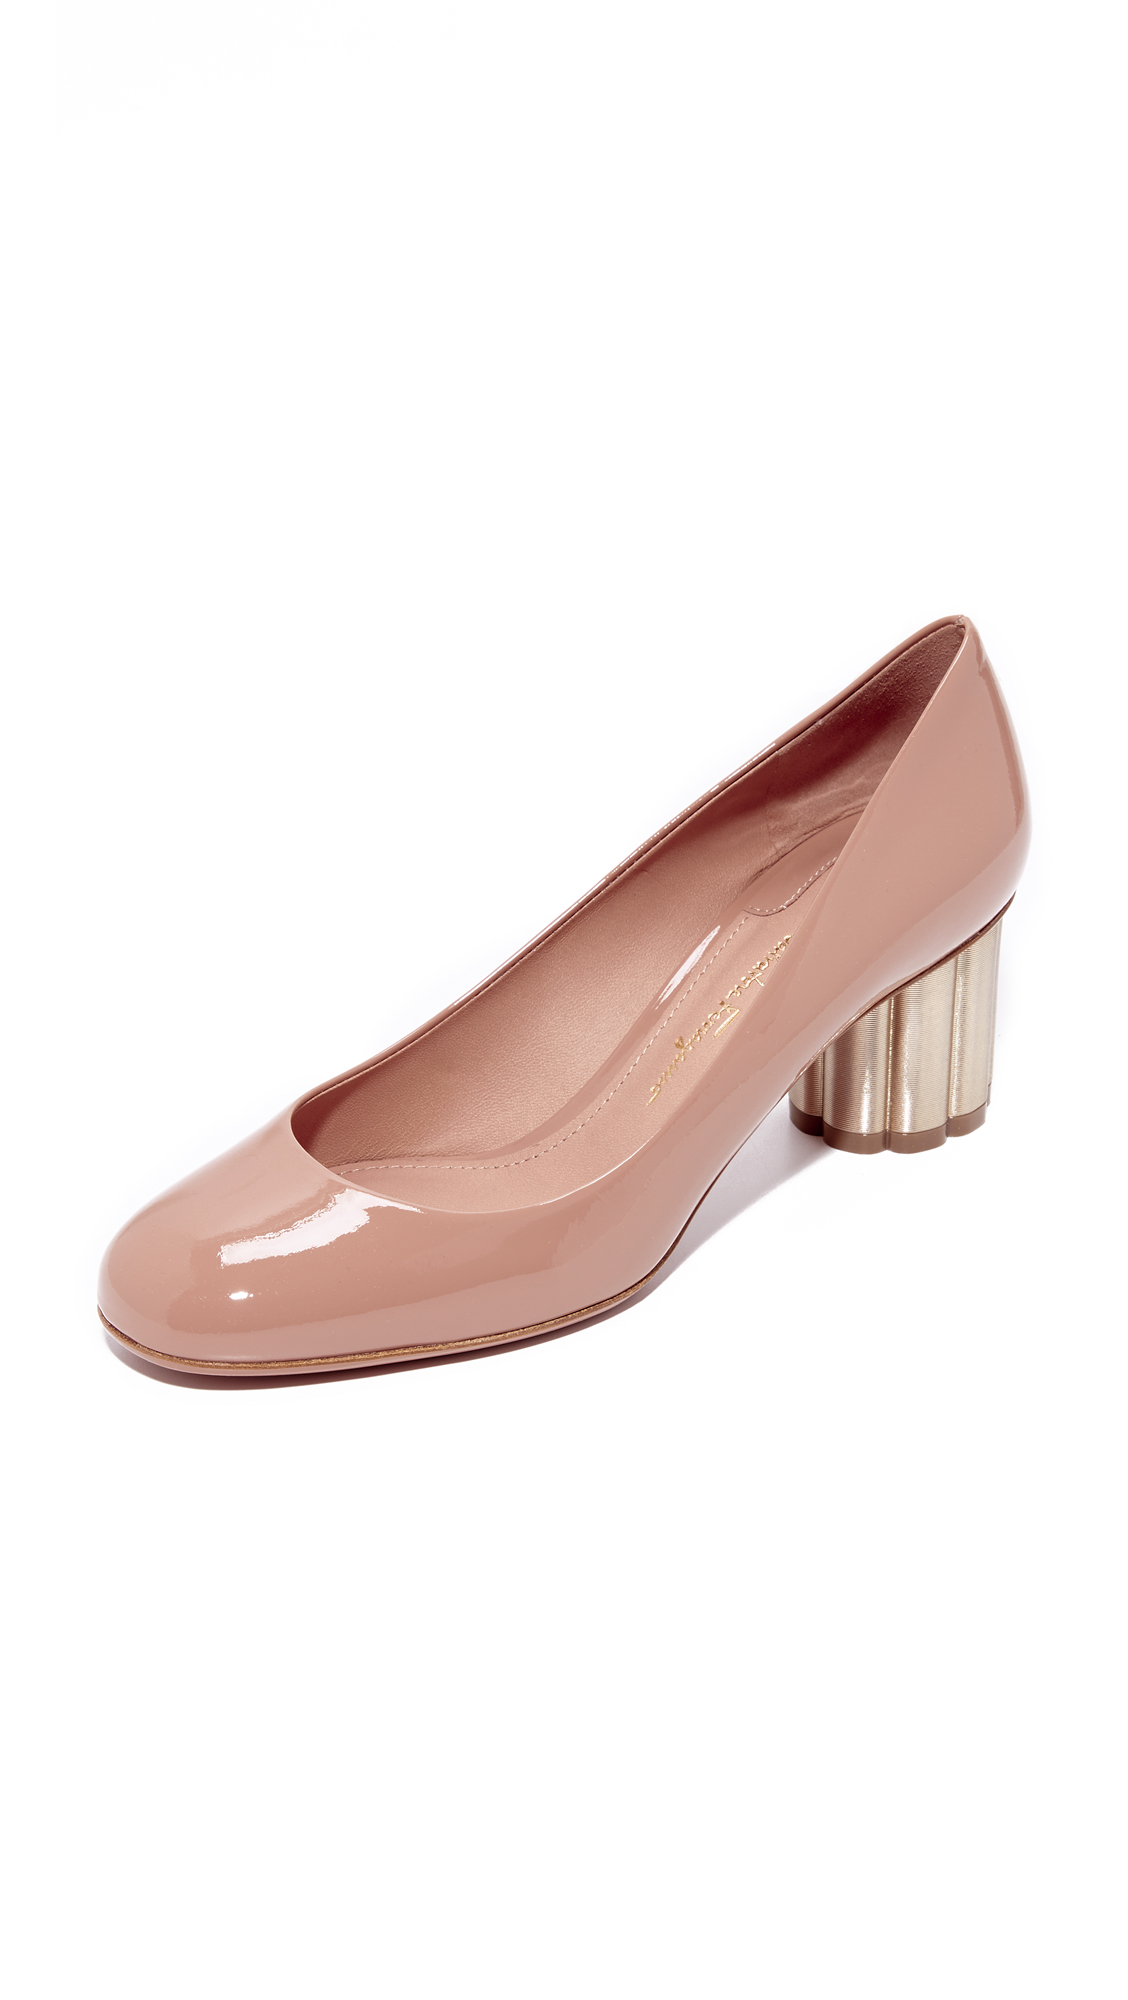 Salvatore Ferragamo Lucca Pumps - New Blush